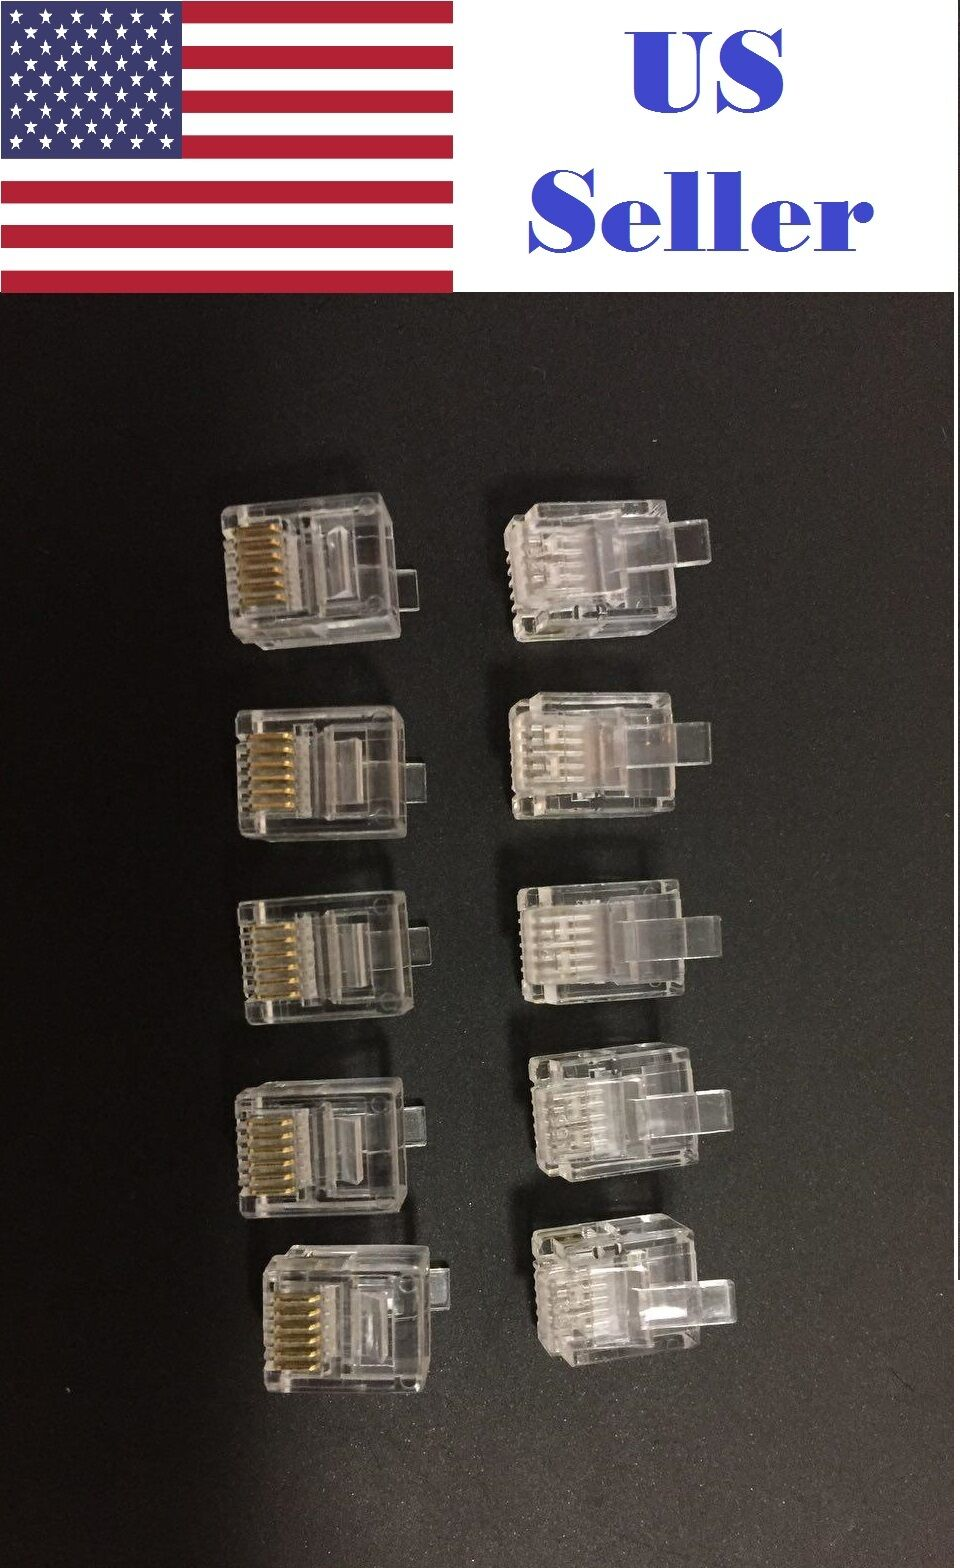 10pcs Amp 6 Wire Modular Phone Line Plugs 6p6c Gold Contacts Rj11 Rj25 Wiring Diagram For Connector 1 Of 2free Shipping